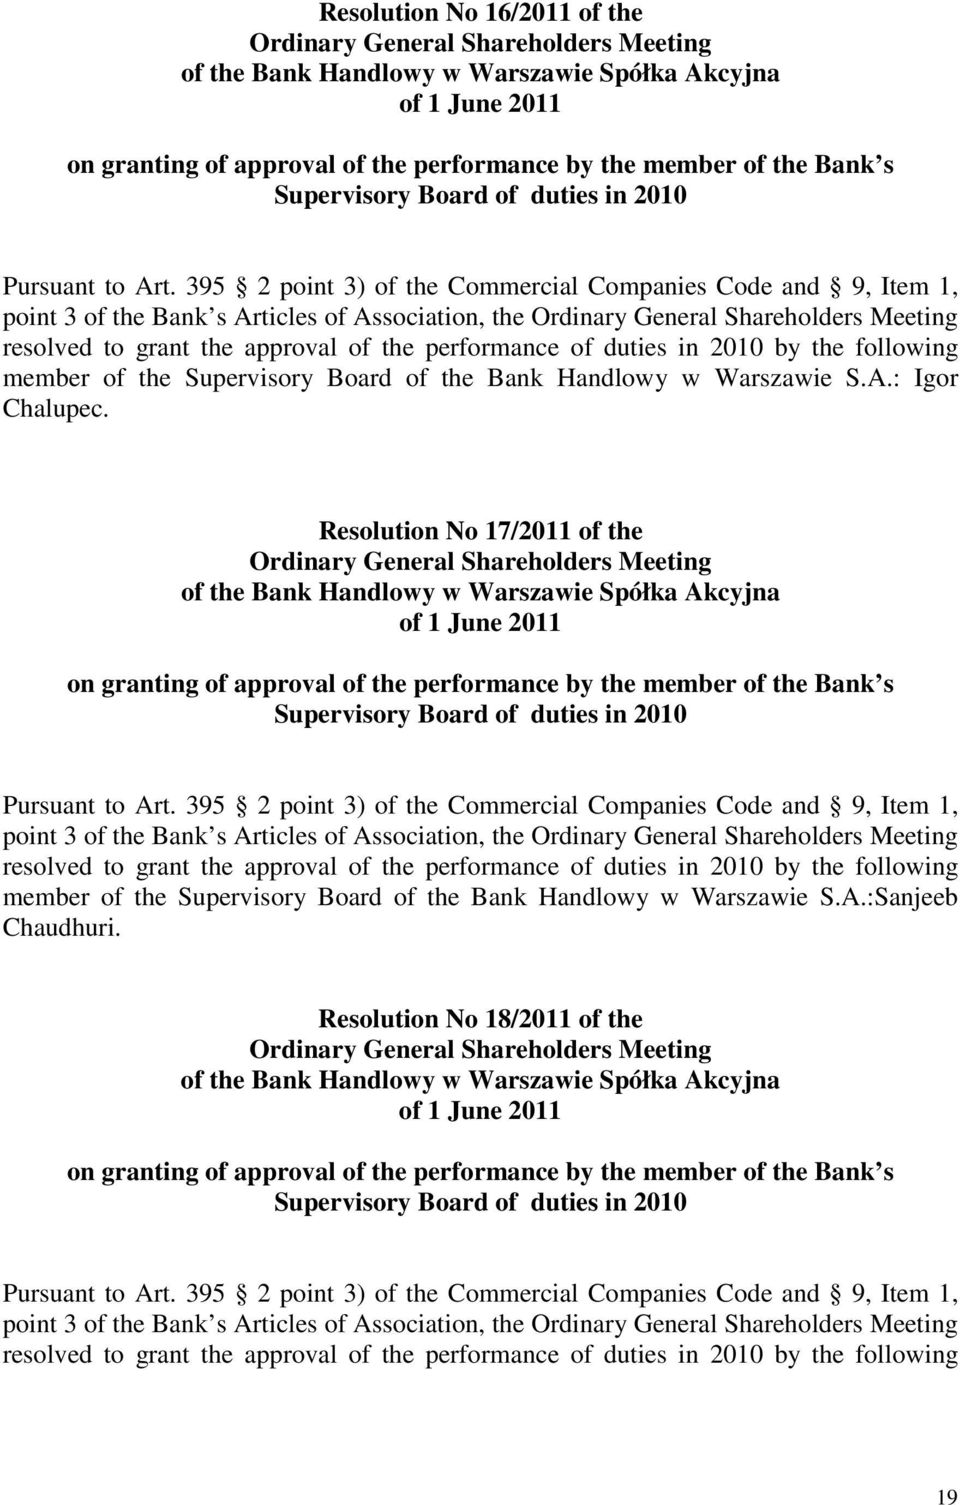 Resolution No 17/2011 of the member of the Supervisory Board of